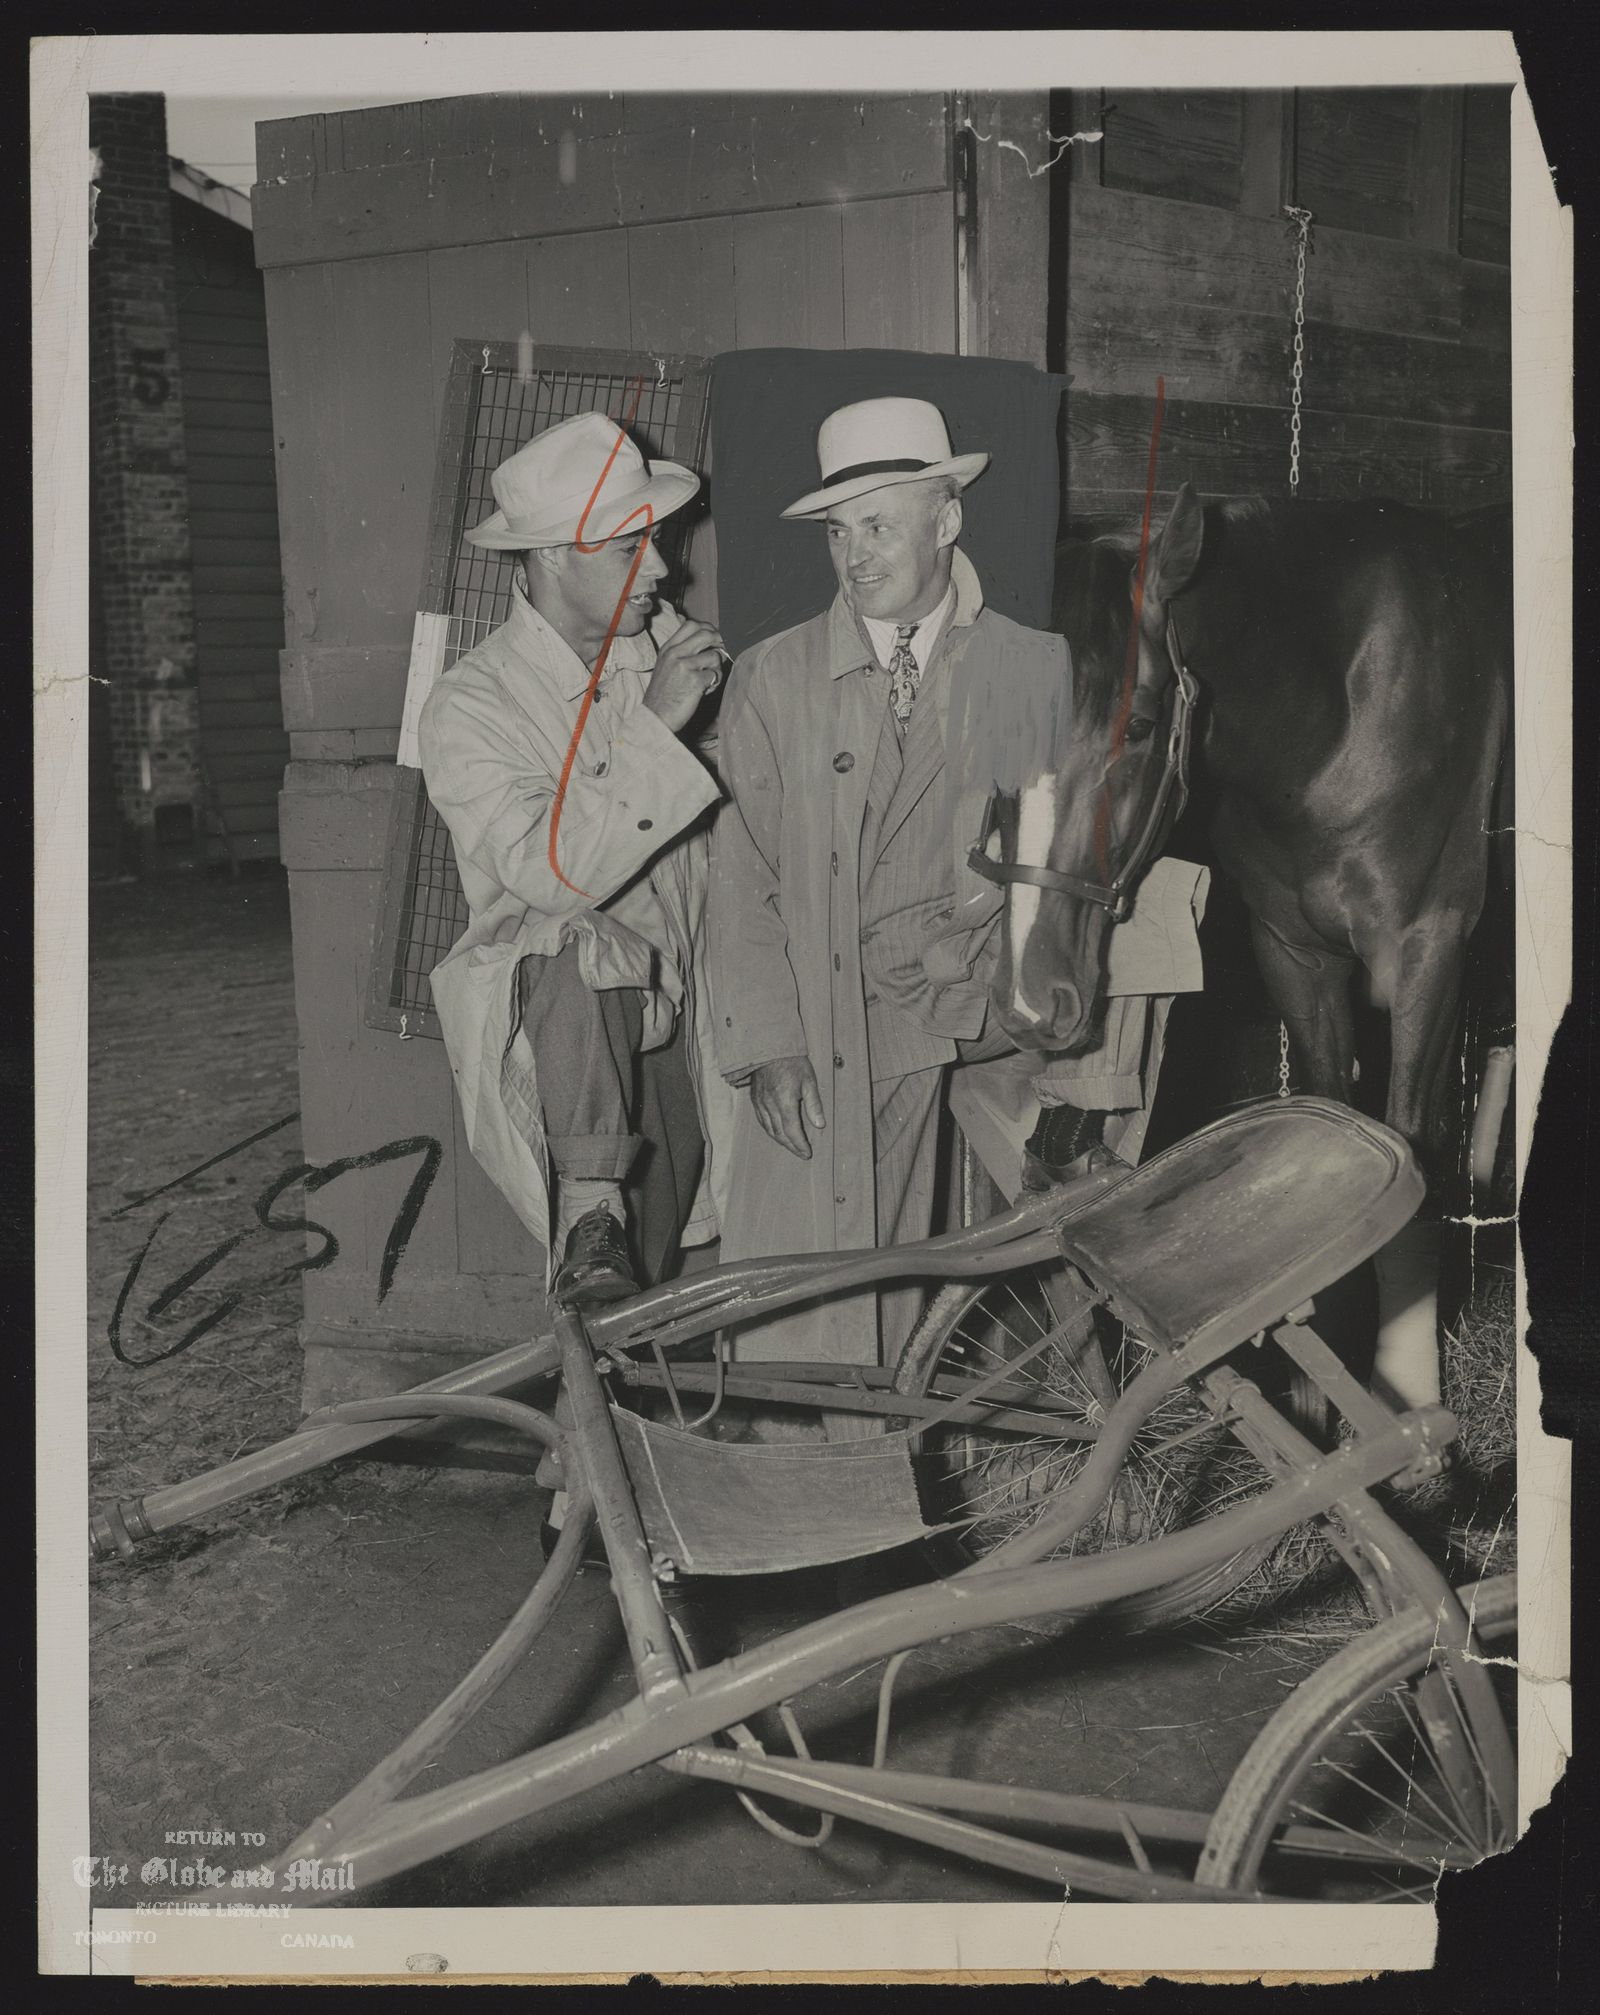 HAMBLETONlAN POSTPONED. WITH HIS SON, WILLIAM (LEFT), EARL ROWE, CANADIAN MEMBER OF PARLIAMENT, VISITS HIS ENTRY, VAN RIDDELL, IN THE BARNS OF GOOD TIME RACE TRACK AT GOSHEN, N. Y., AUG. 7 [1946]. THE 21ST RUNNING OF THE HAMBLETONlAN, SCHEDULED TO BE RUN AUG.7 WAS POSTPONED UNTIL AUG.8 BECAUSE OF HEAVY RAINS.